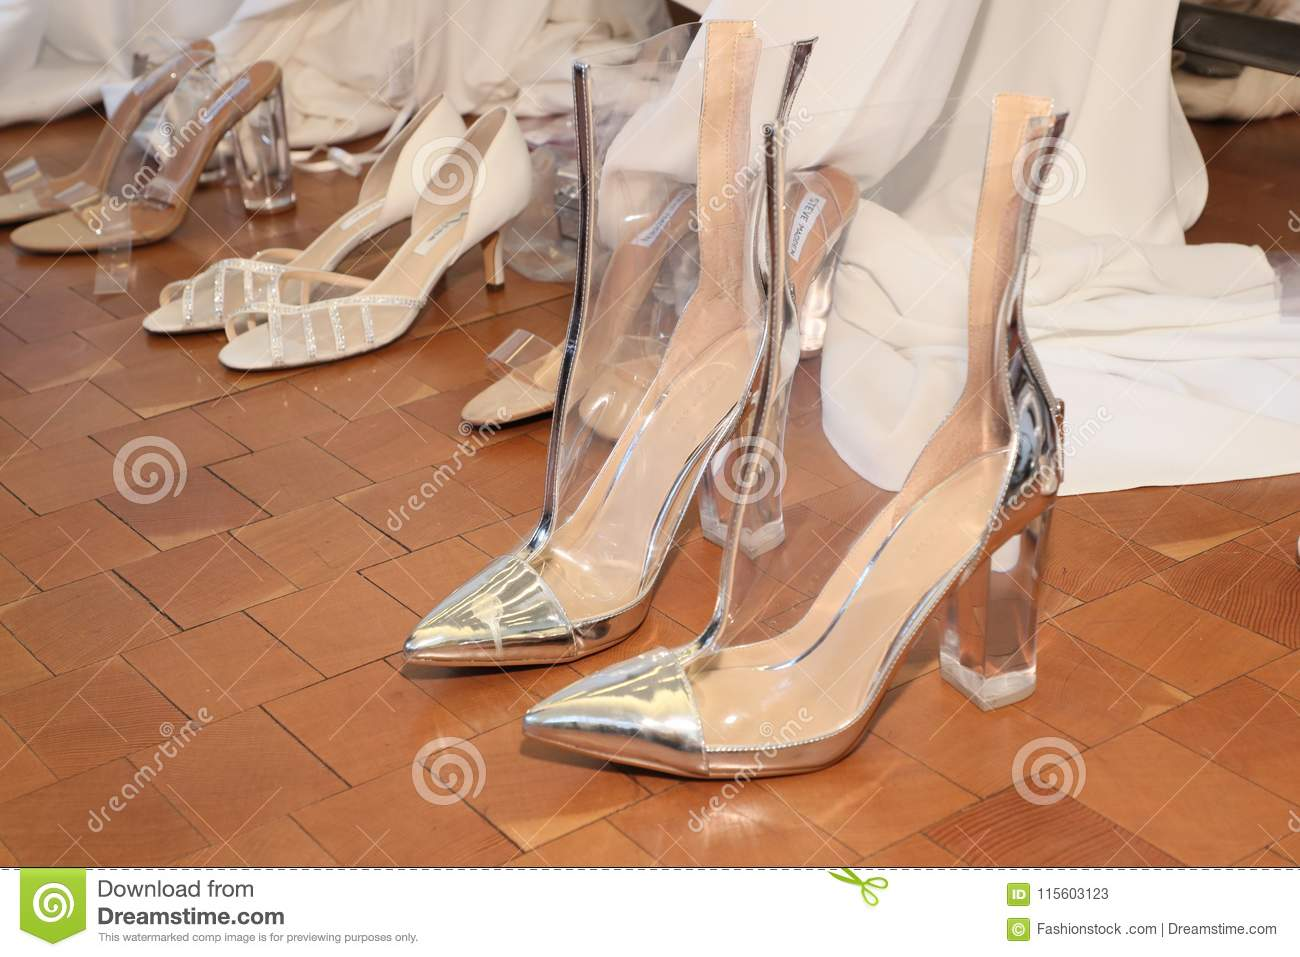 3c94d8928974 NEW YORK, NY - APRIL 13: Shoes are seen backstage before the Justin  Alexander Spring 2019 Bridal Fashion show on April 13, 2018 in New York  City.